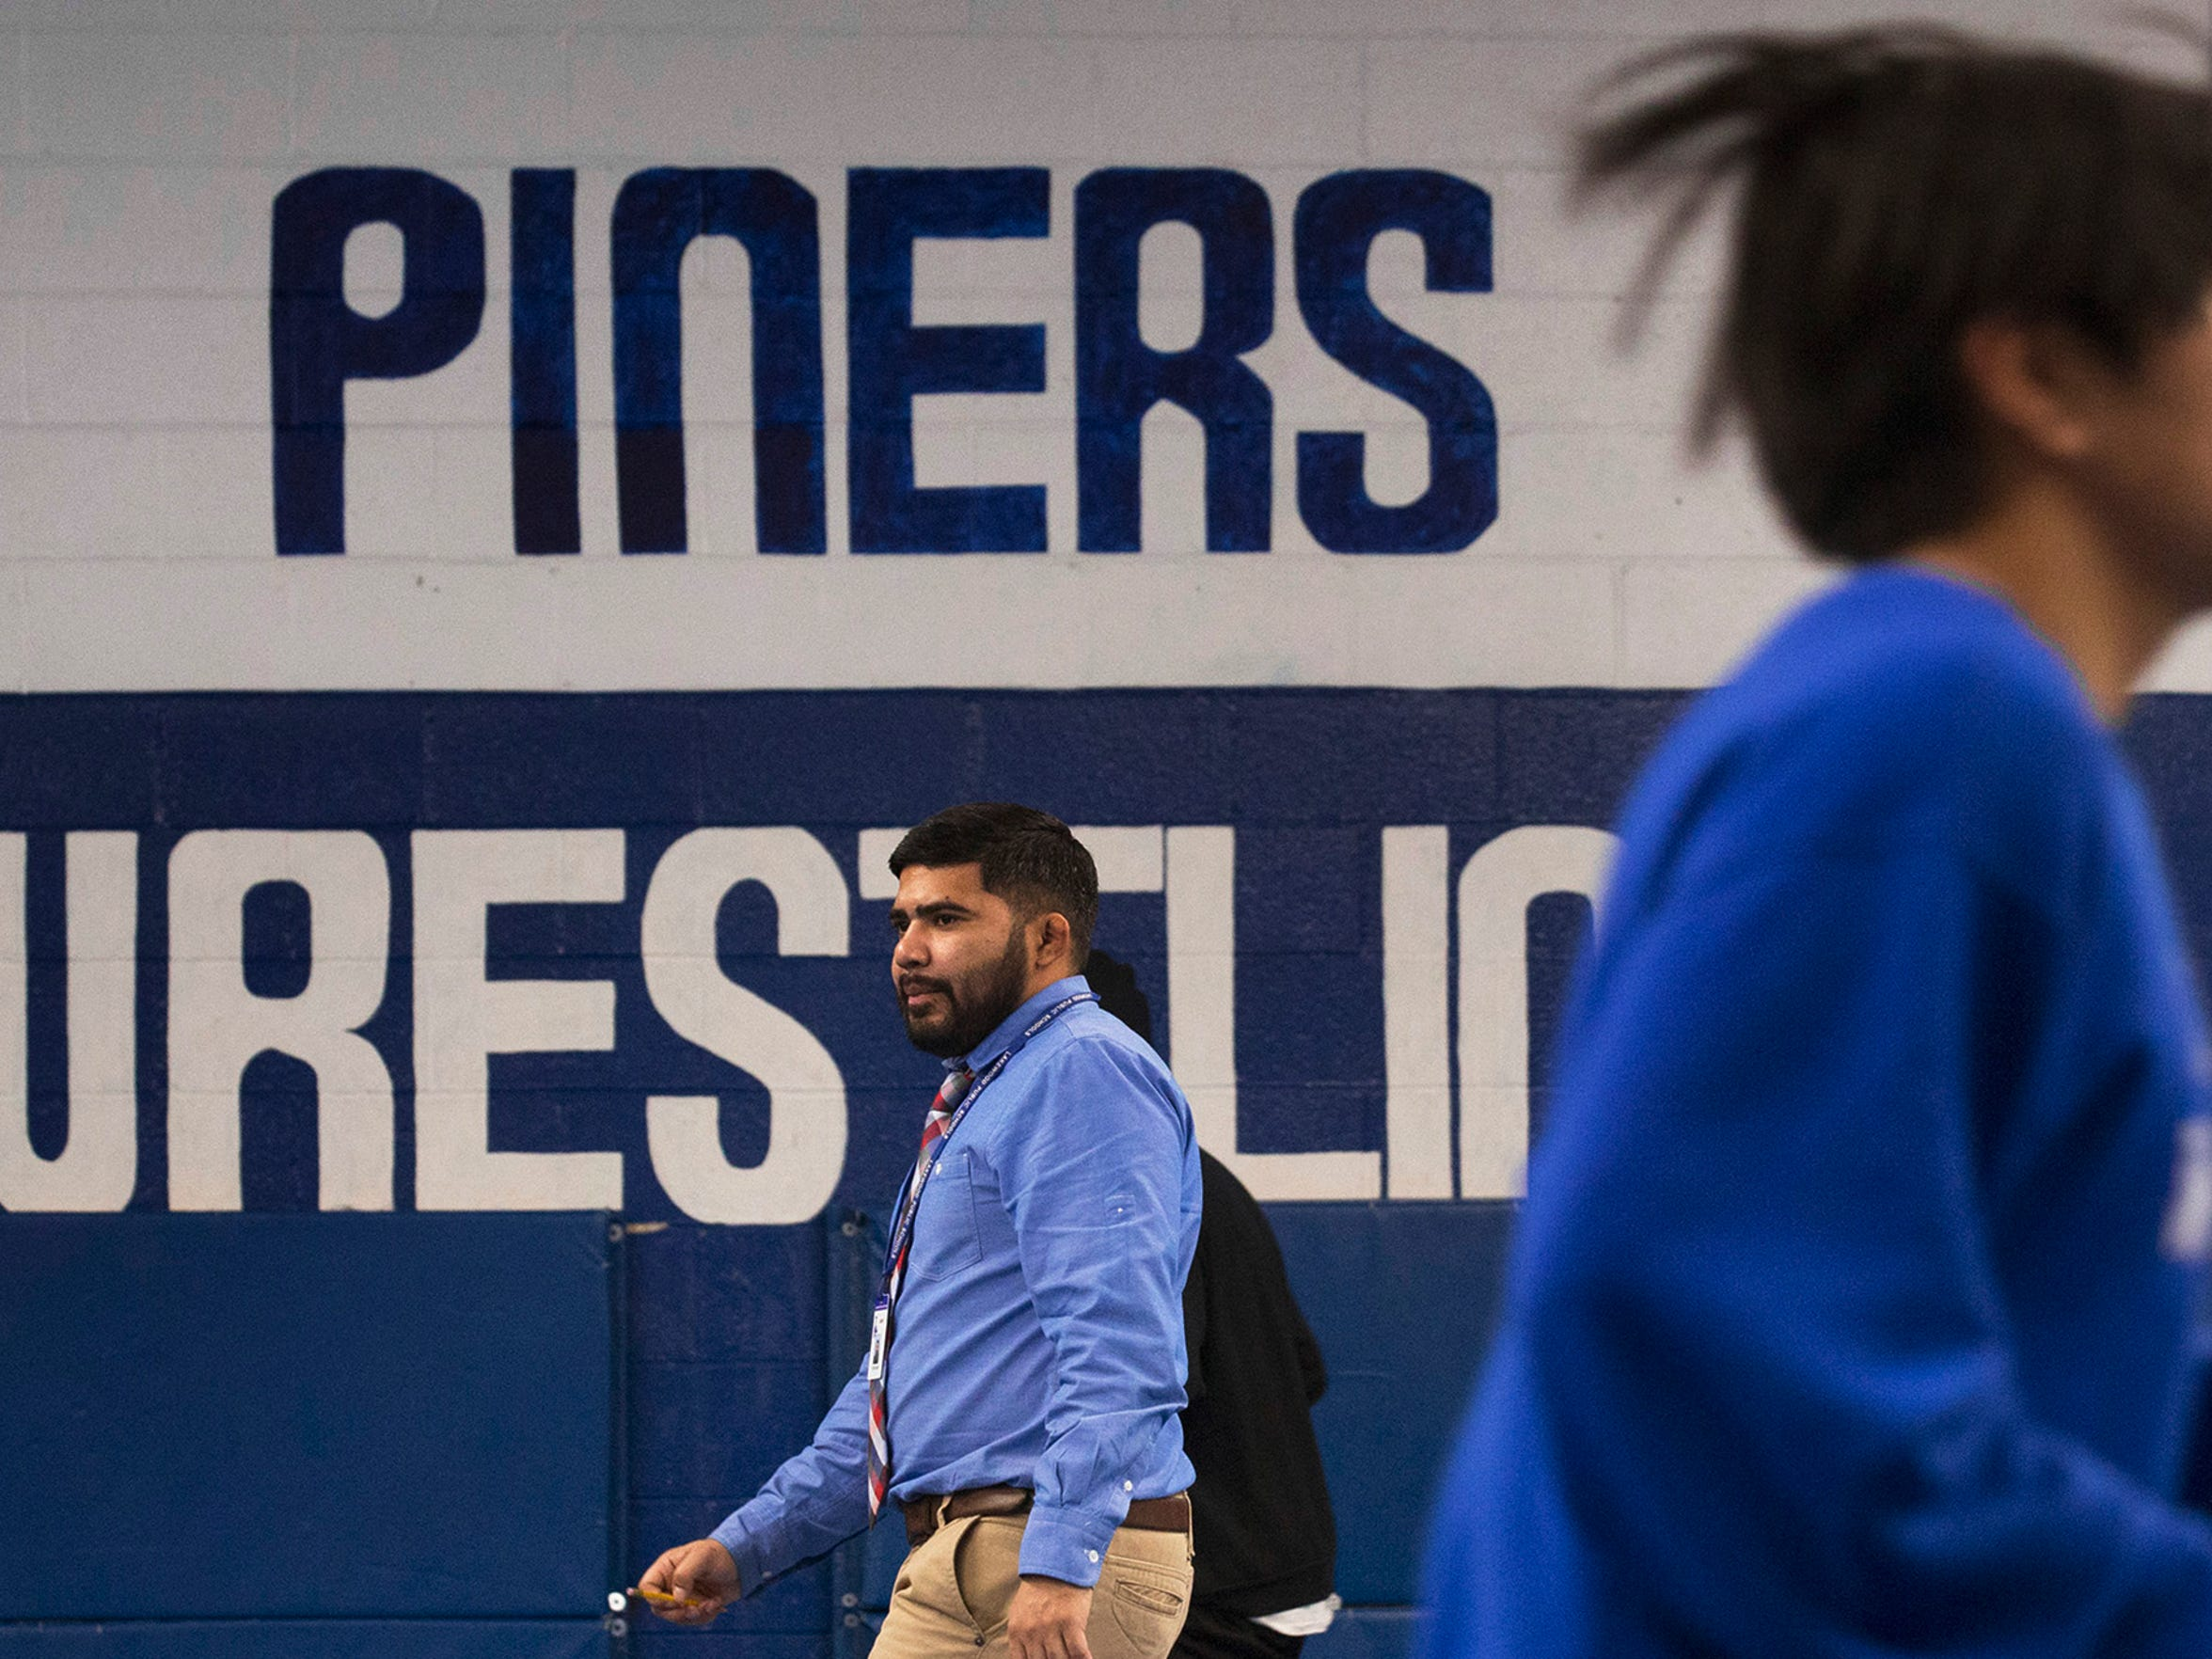 Lakewood High School Wrestling Coach Oscar Orellana with his team as they warm up before a match against Camden and during the match.